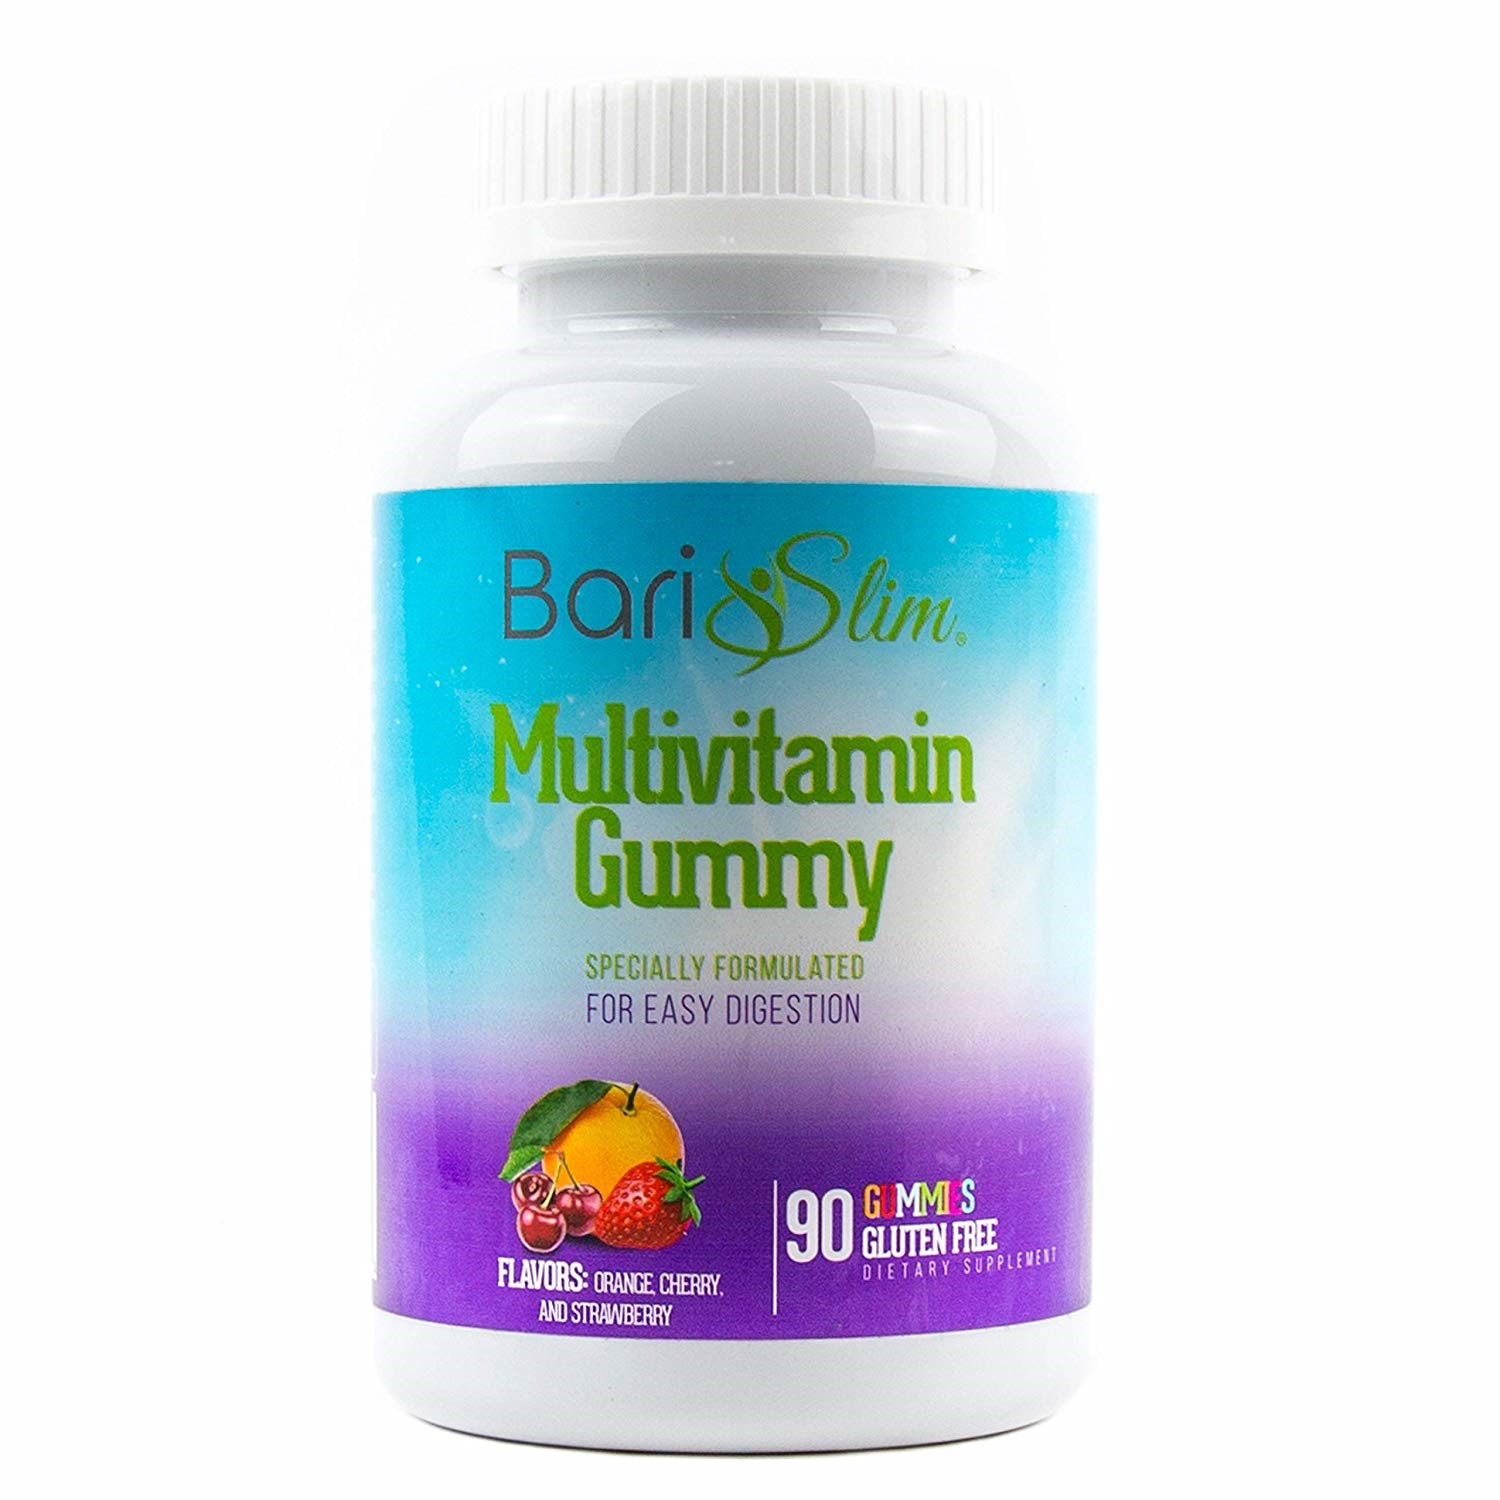 BariSlim Bariatric Multivitamin Gummies Specially Formulated Gummy Vitamin  for Patients After Weigh